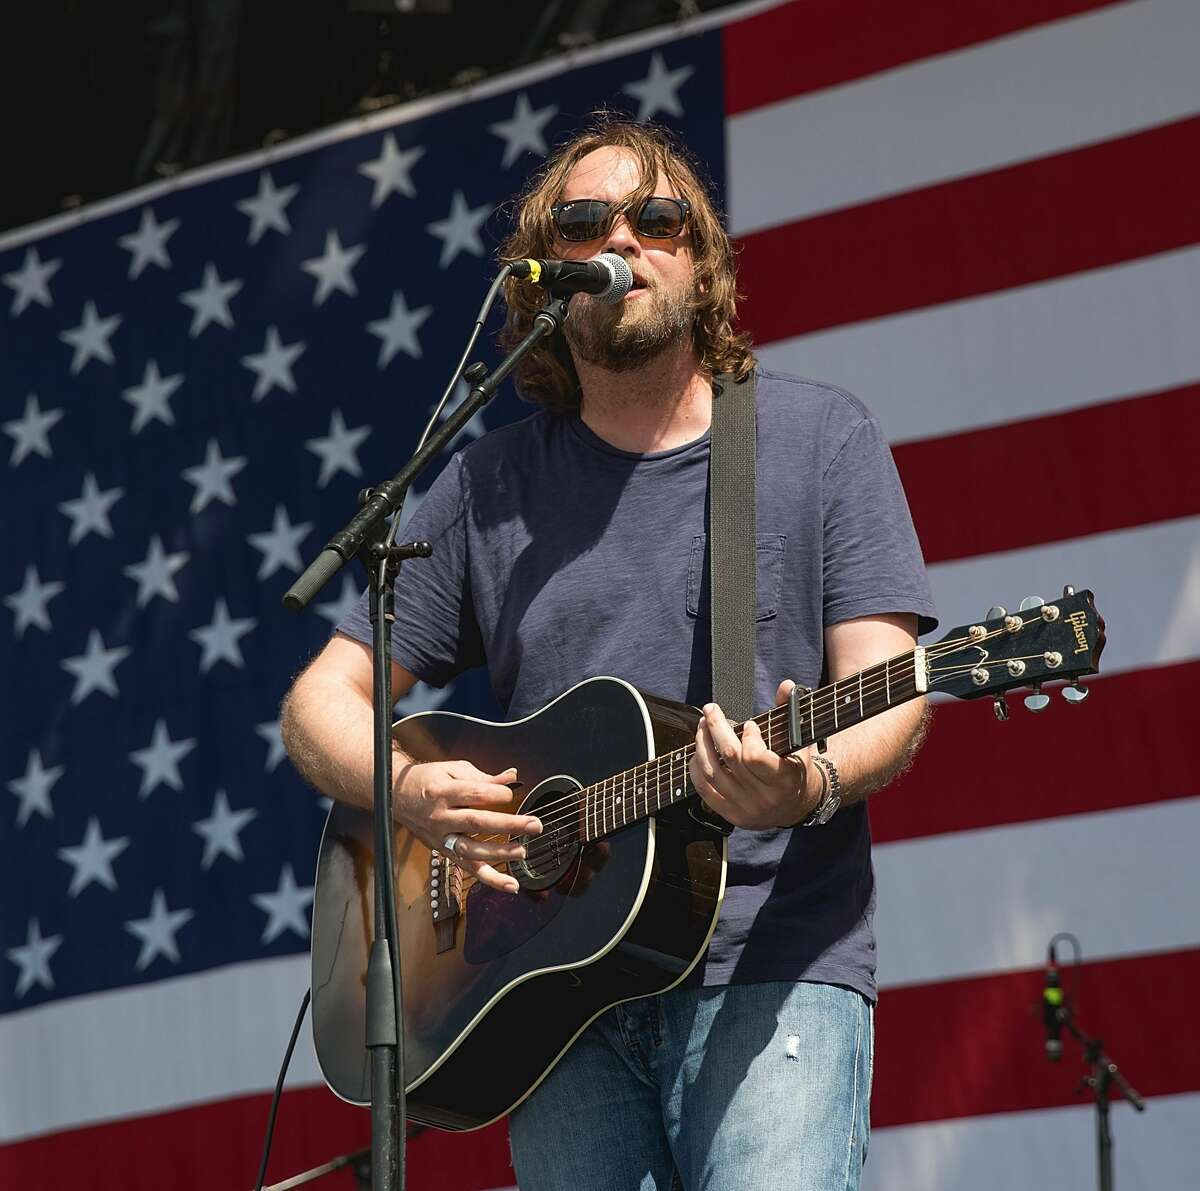 Singer-songwriter Hayes Carll performs onstage during the 44th Annual Willie Nelson 4th of July Picnic at Austin360 Amphitheater on July 4, 2017 in Austin, Texas.